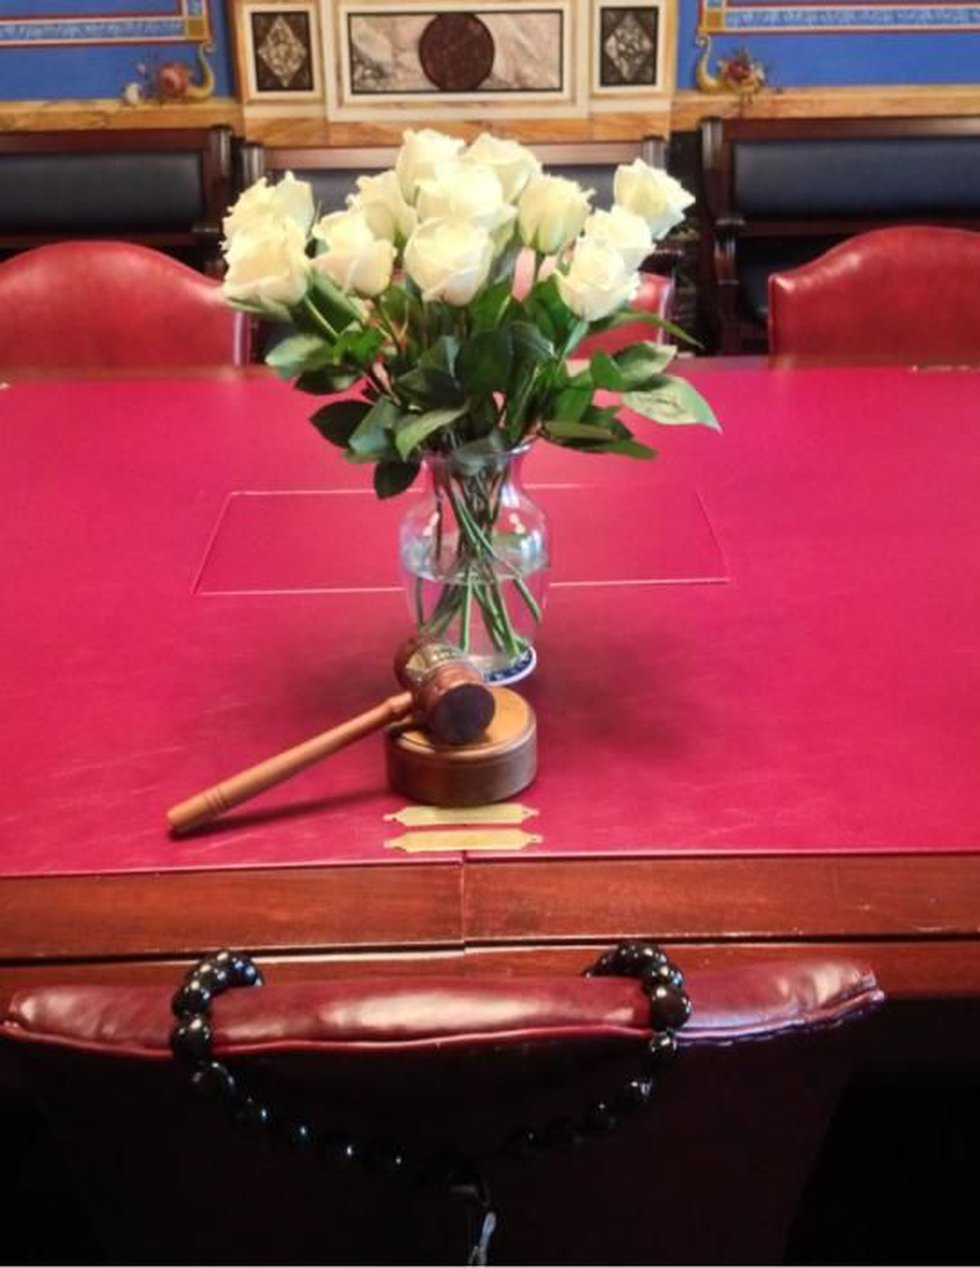 Sen. Inouye's office the day after his passing